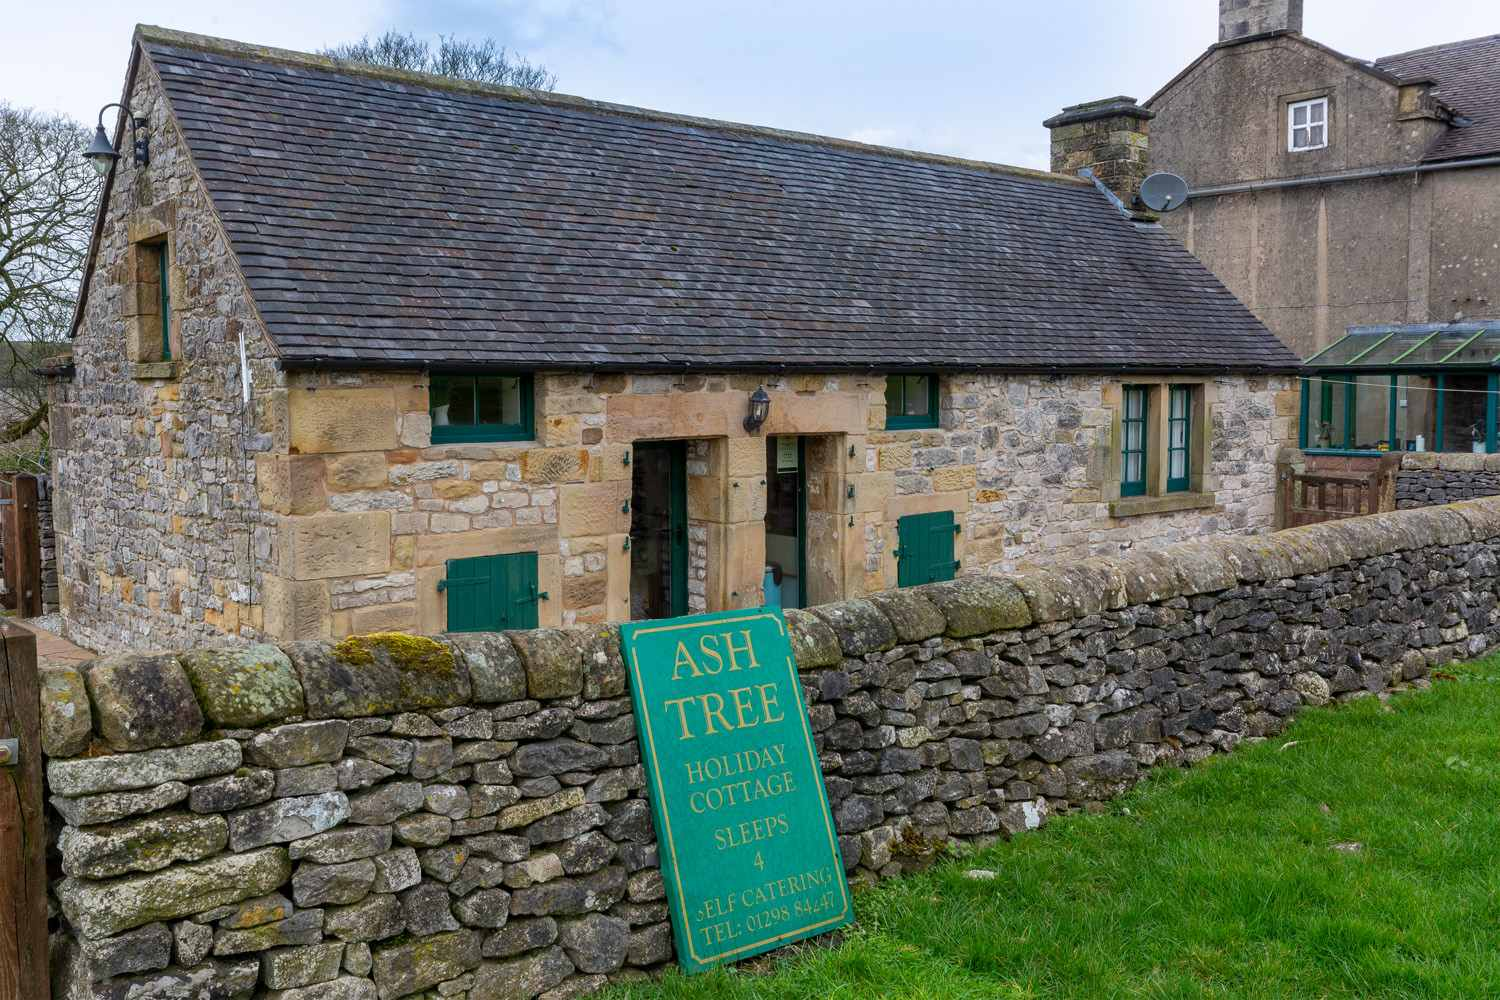 Sleeps 4 Peak District Holiday Cottage